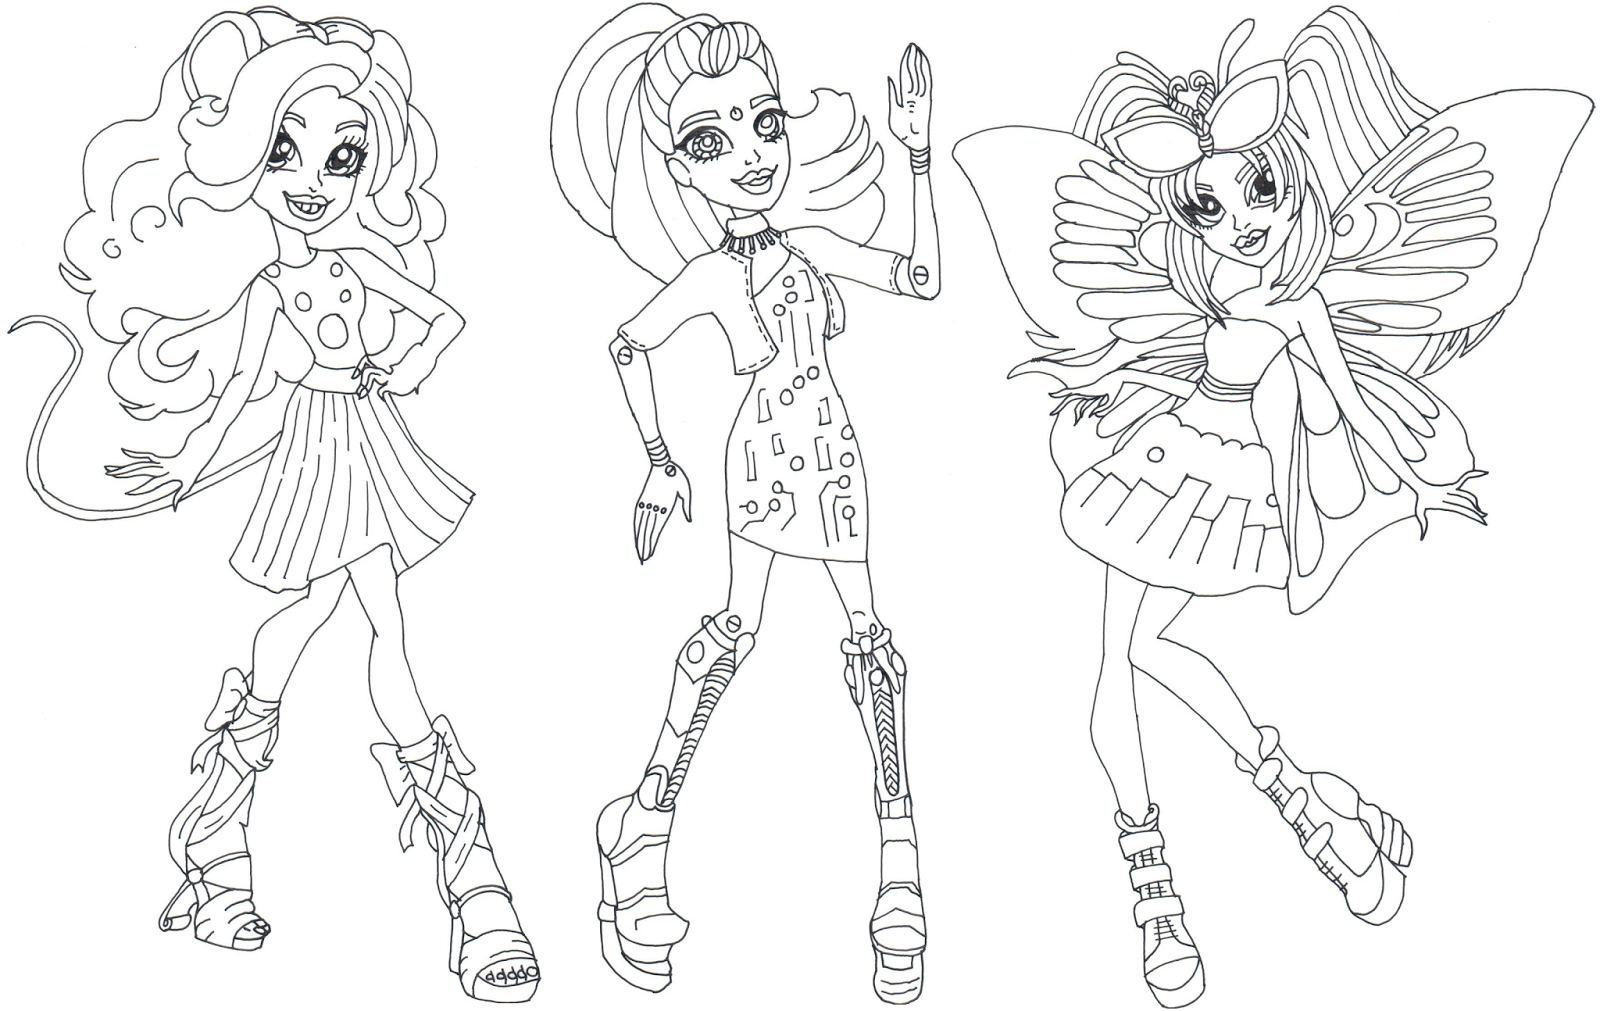 Gala Ghoulfriends Boo York Monster High Coloring Page Png 1600